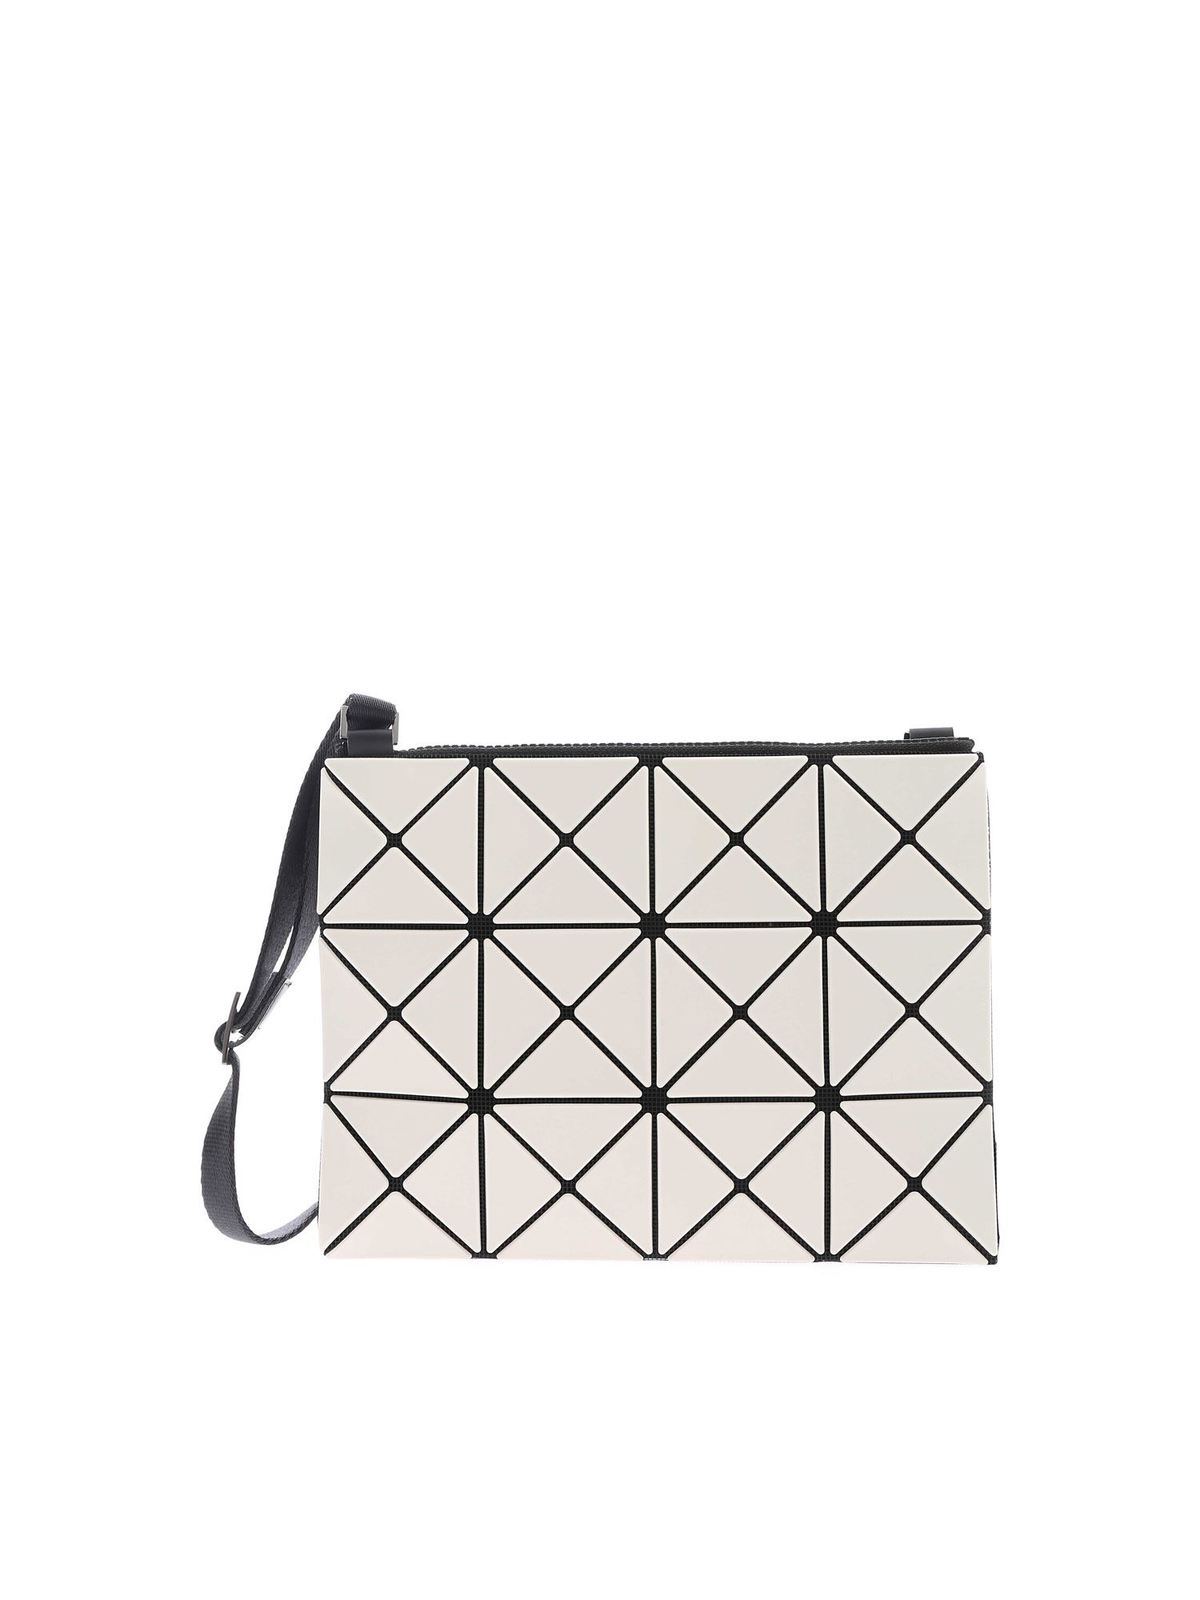 Bao Bao Issey Miyake LUCENT FROST BAG IN ICE COLOR